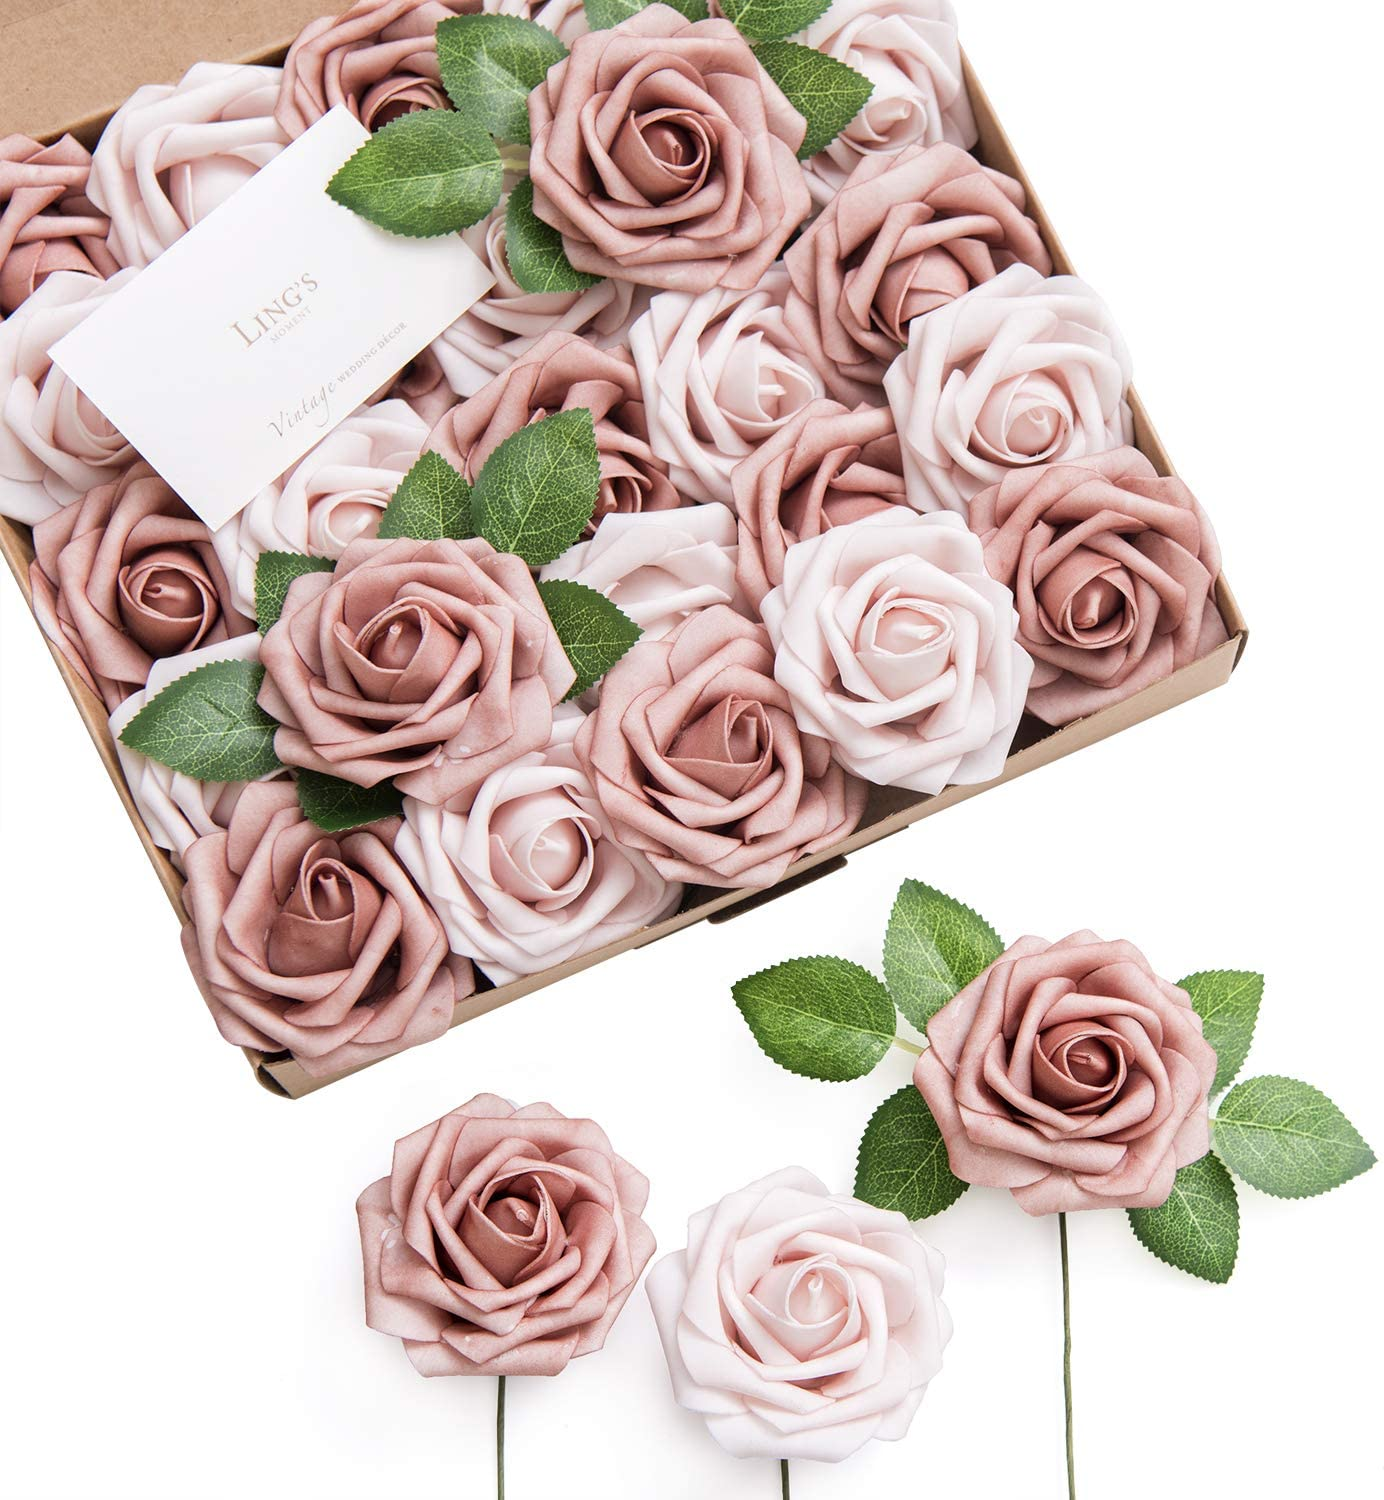 Ling's moment Artificial Flowers Warm Taupe & Nude Roses 25pcs Real Looking Fake Roses w/Stem for DIY Wedding Bouquets Centerpieces Arrangements Party Baby Shower Home Decorations